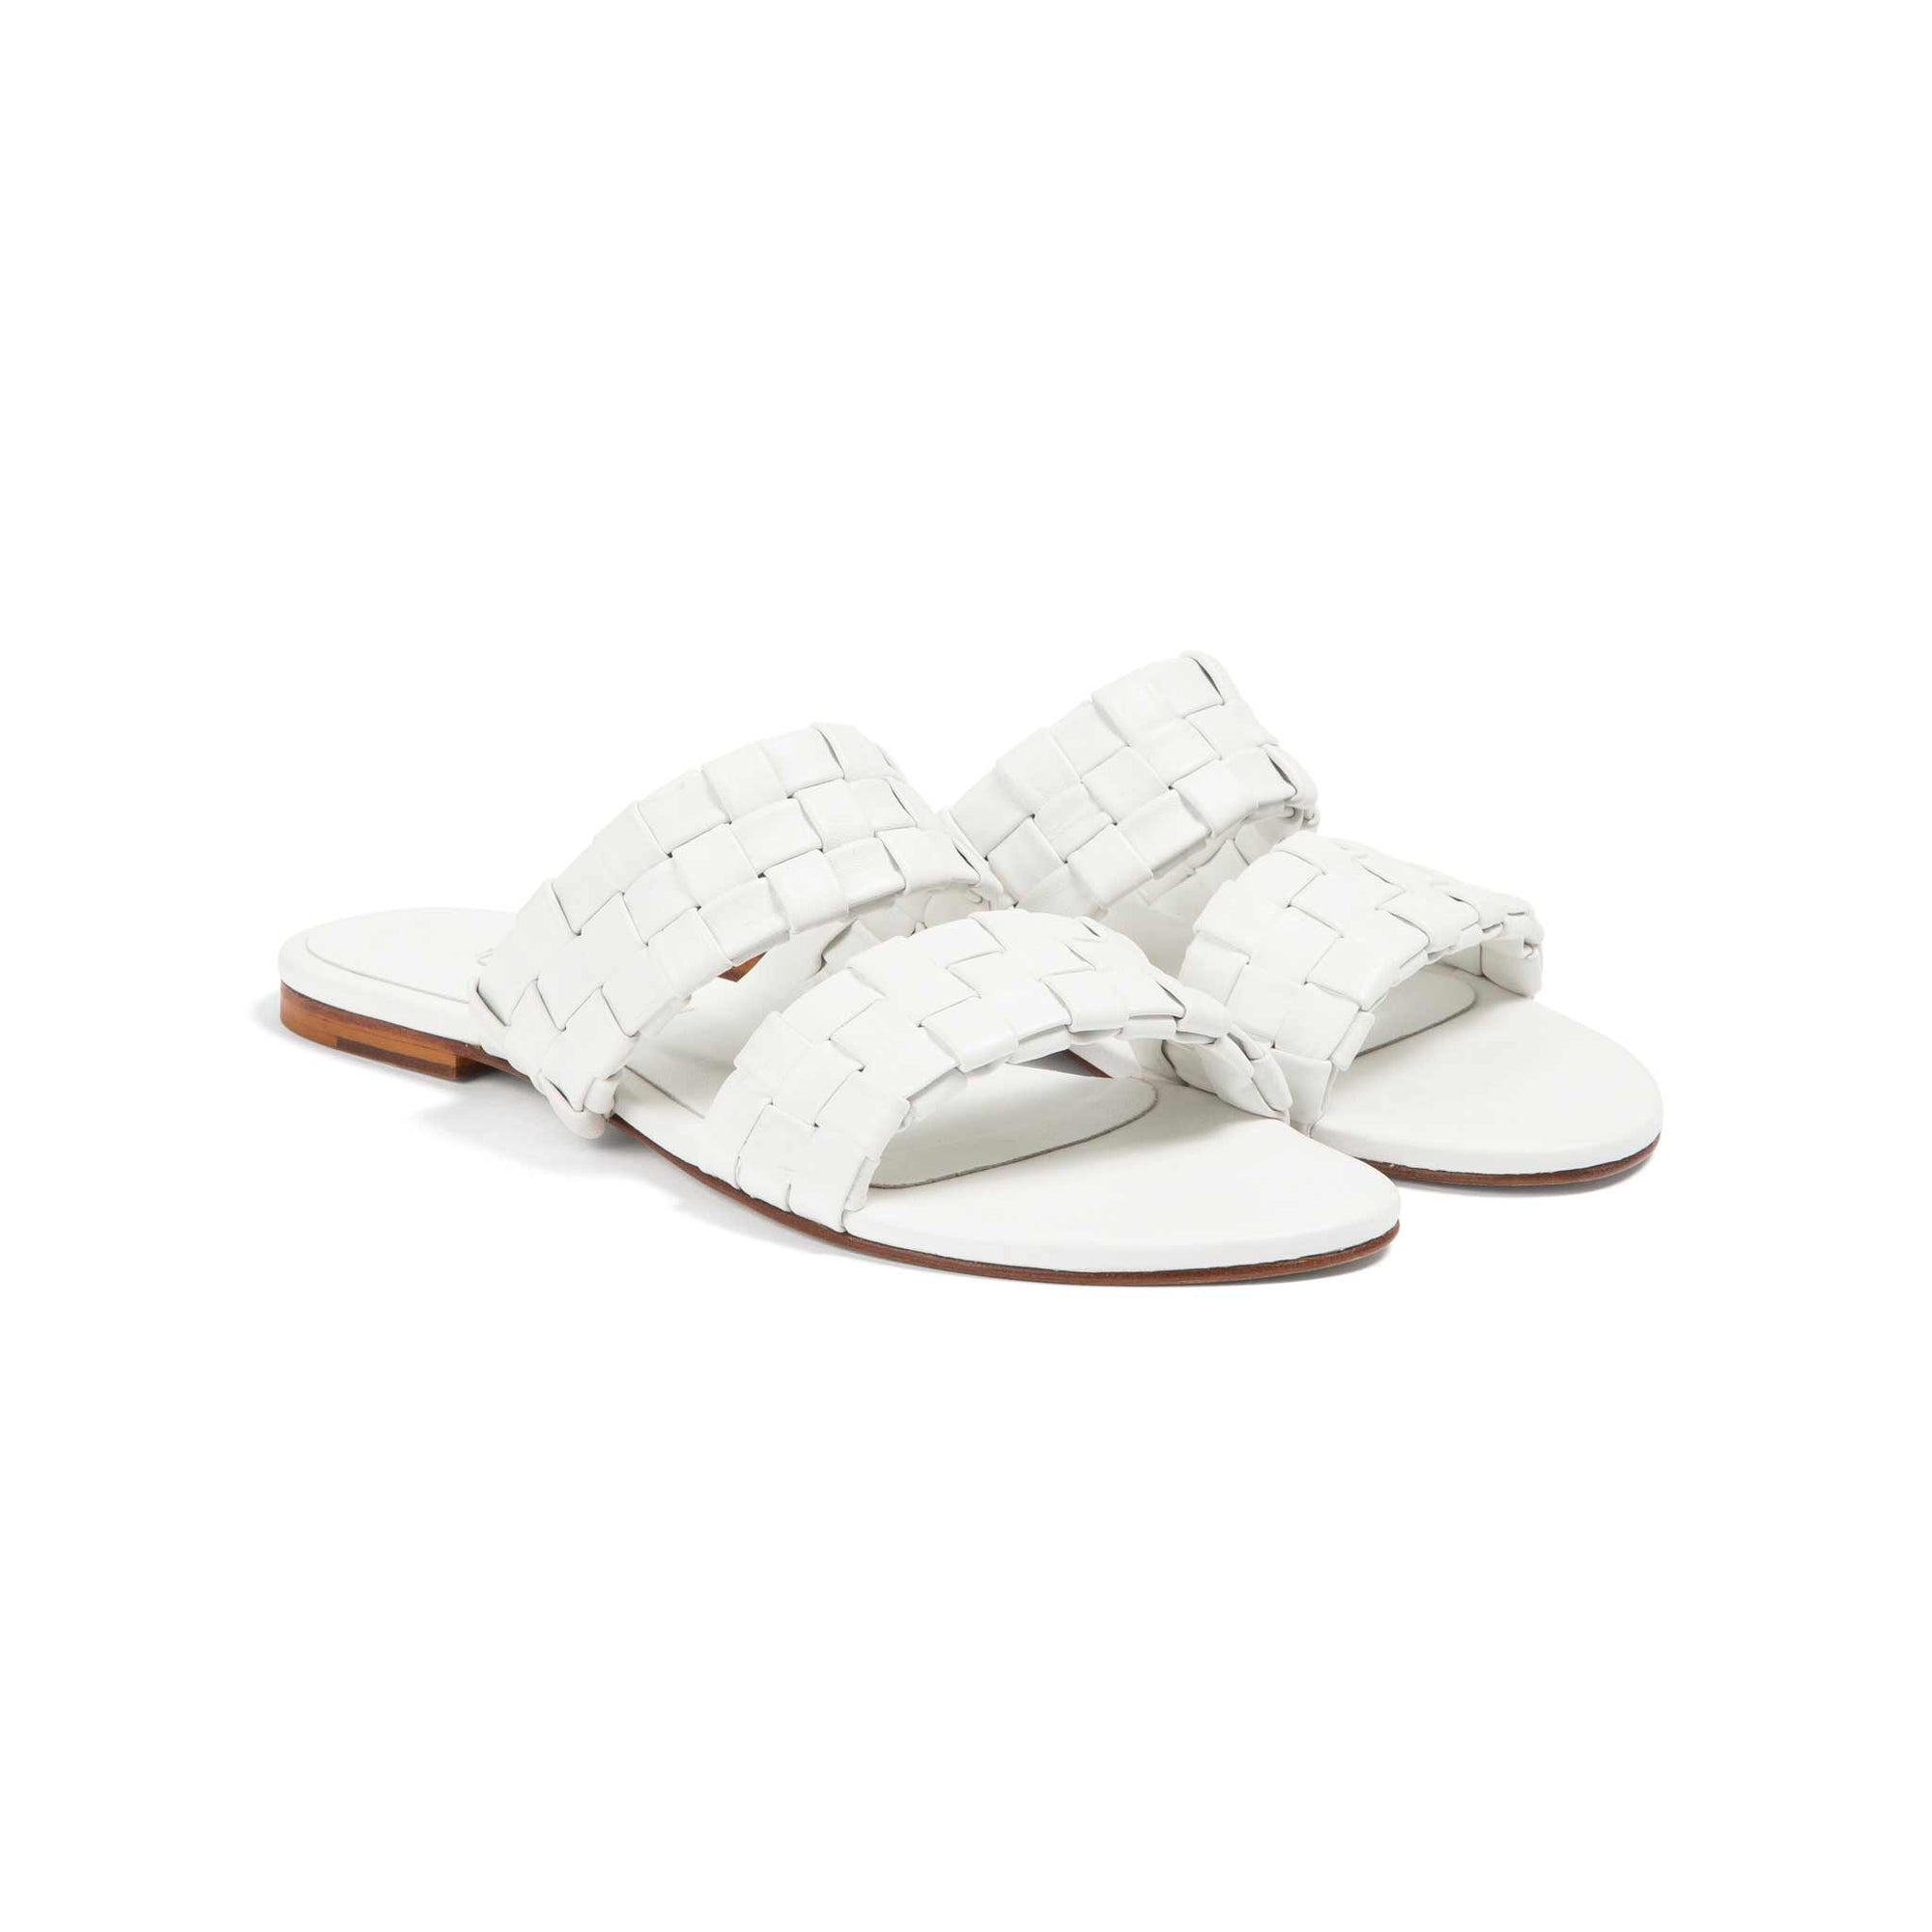 LOUNGER 2.0 | White